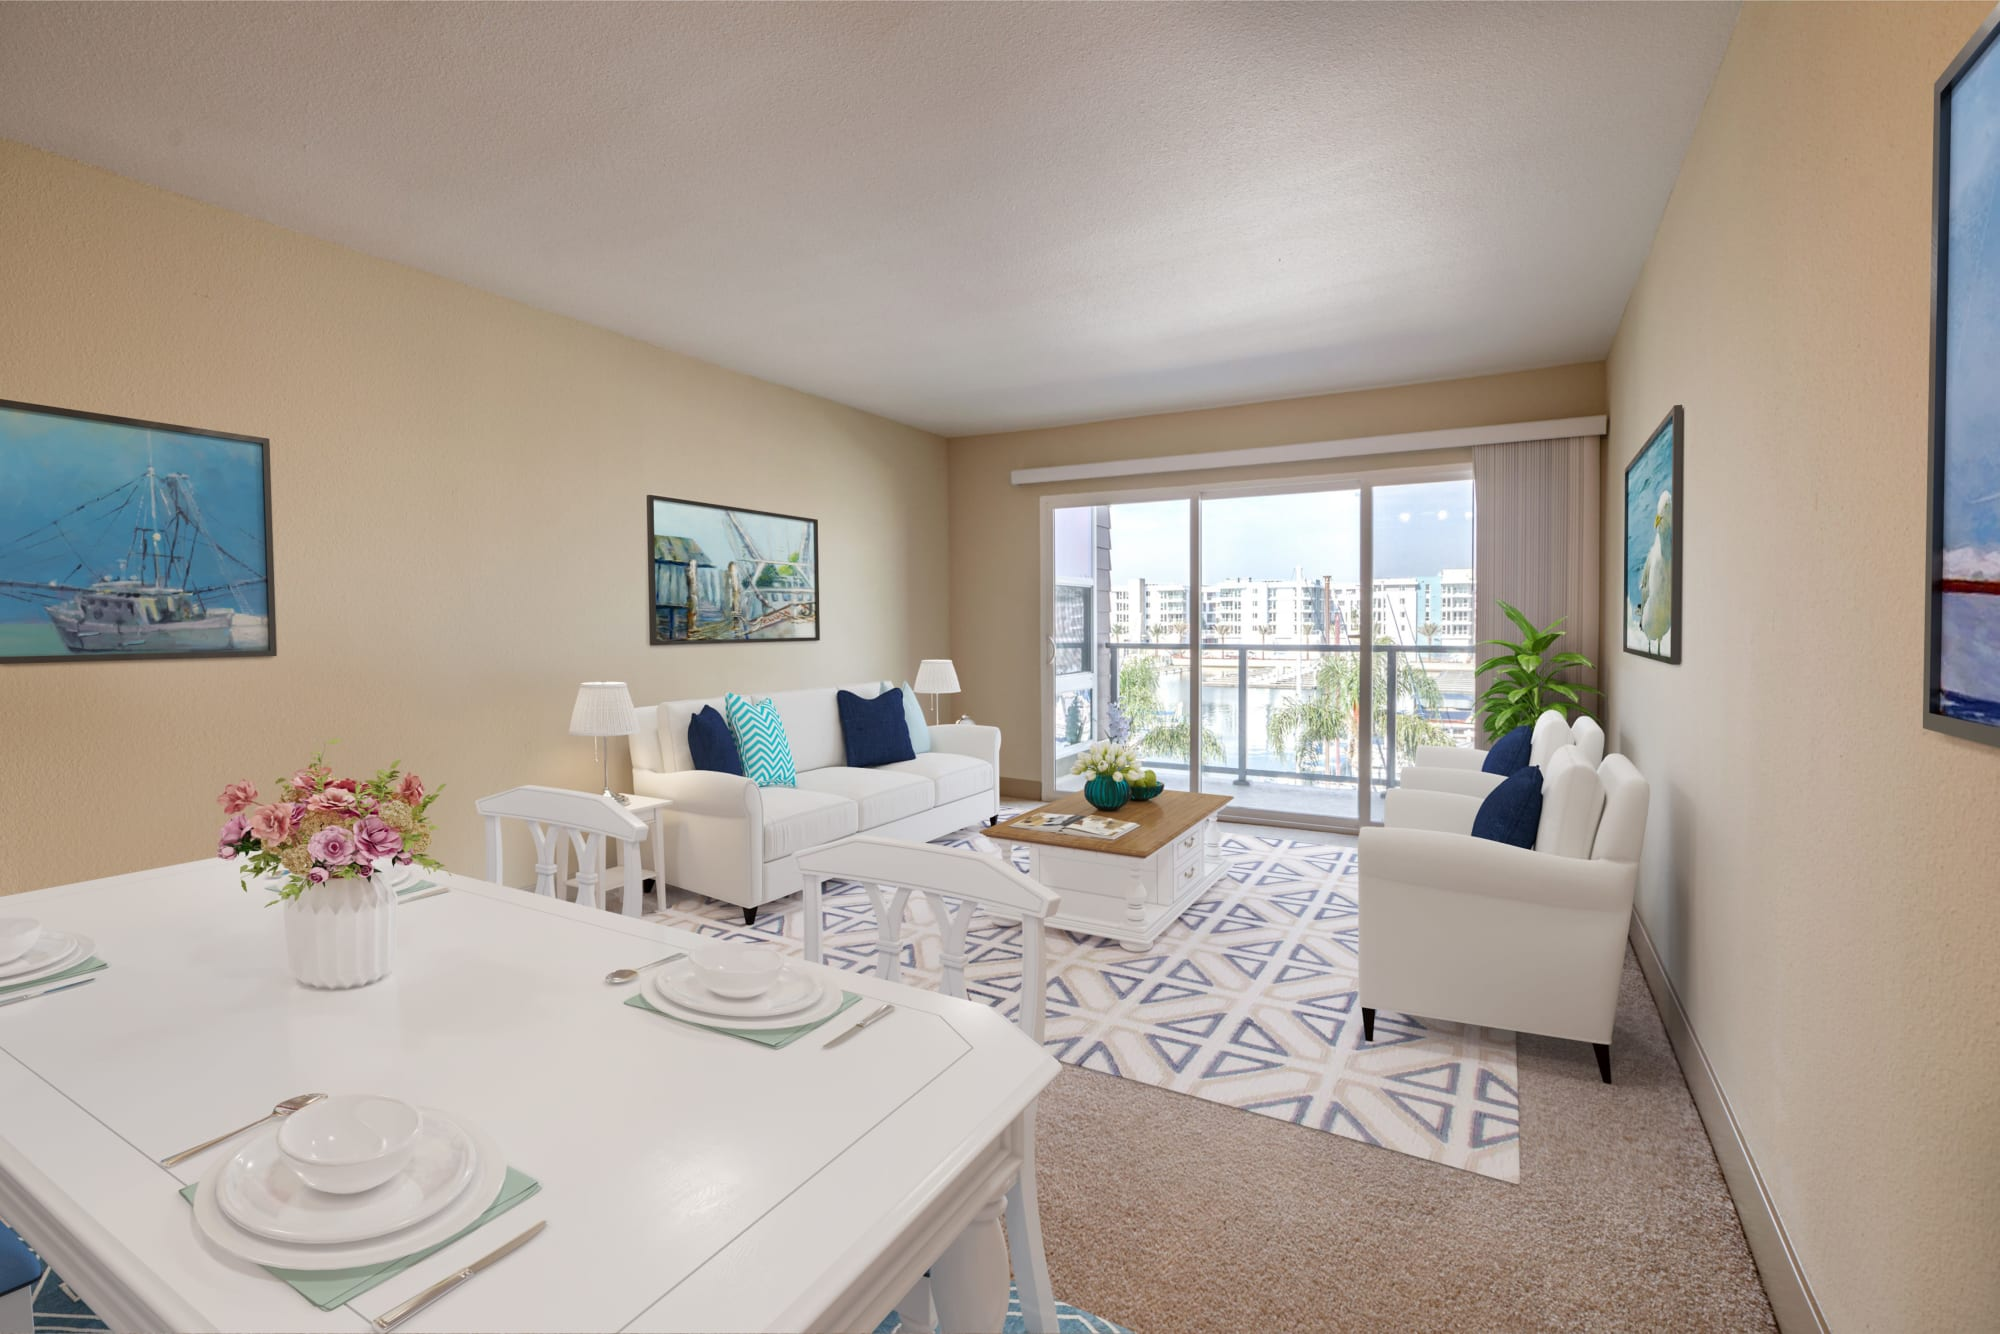 Daylight pours through floor-to-ceiling windows into the living room at Harborside Marina Bay Apartments in Marina del Rey, California